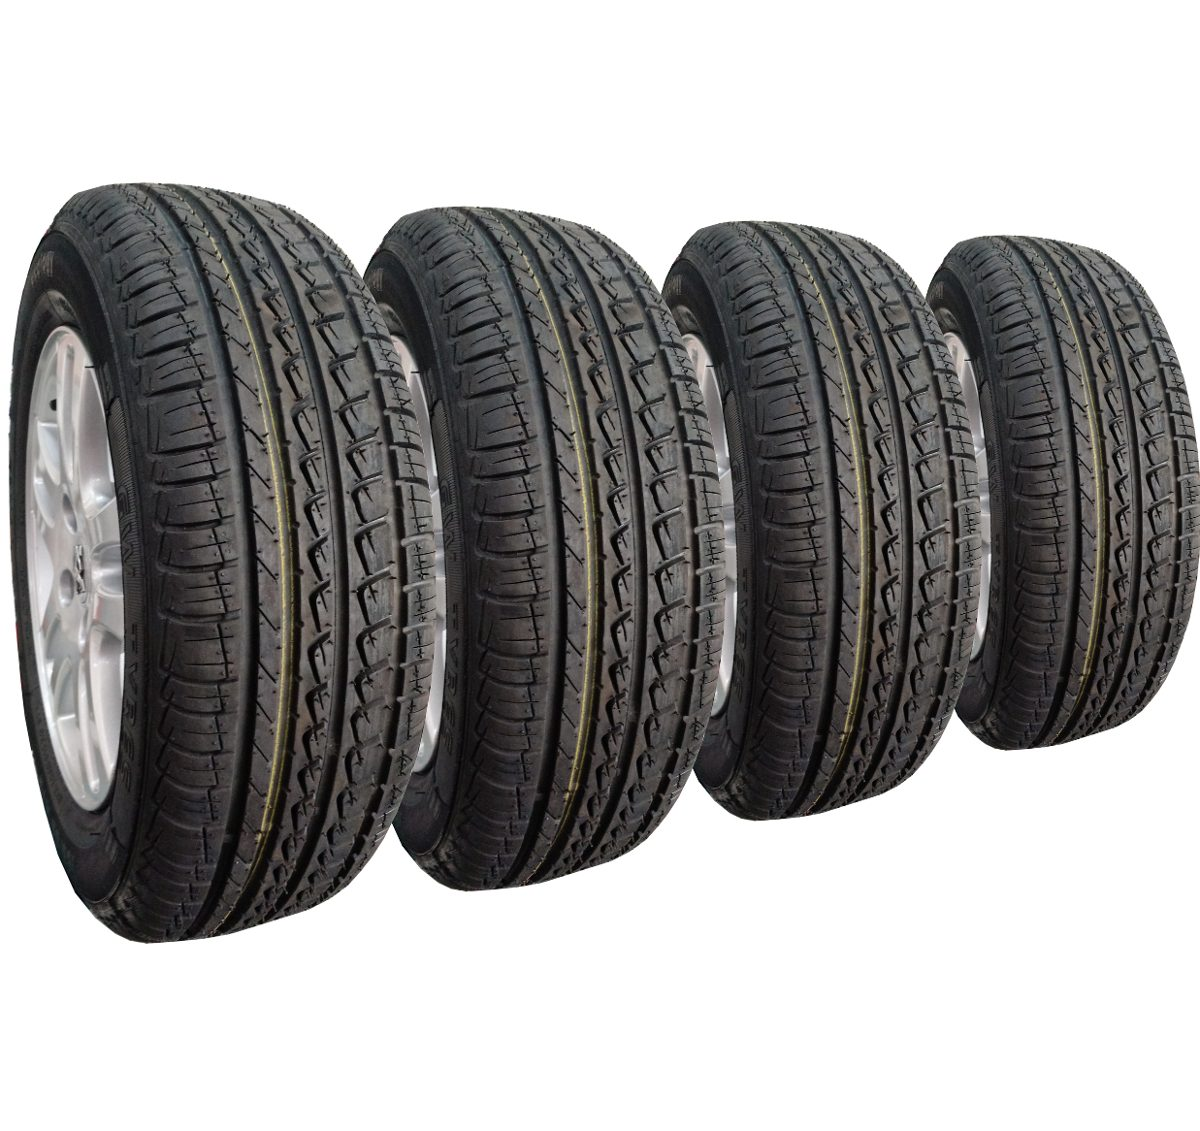 kit 4 pneu 195 65 r15 remold gw tyre pirelli 5 anos garantia r 785 00 em mercado livre. Black Bedroom Furniture Sets. Home Design Ideas